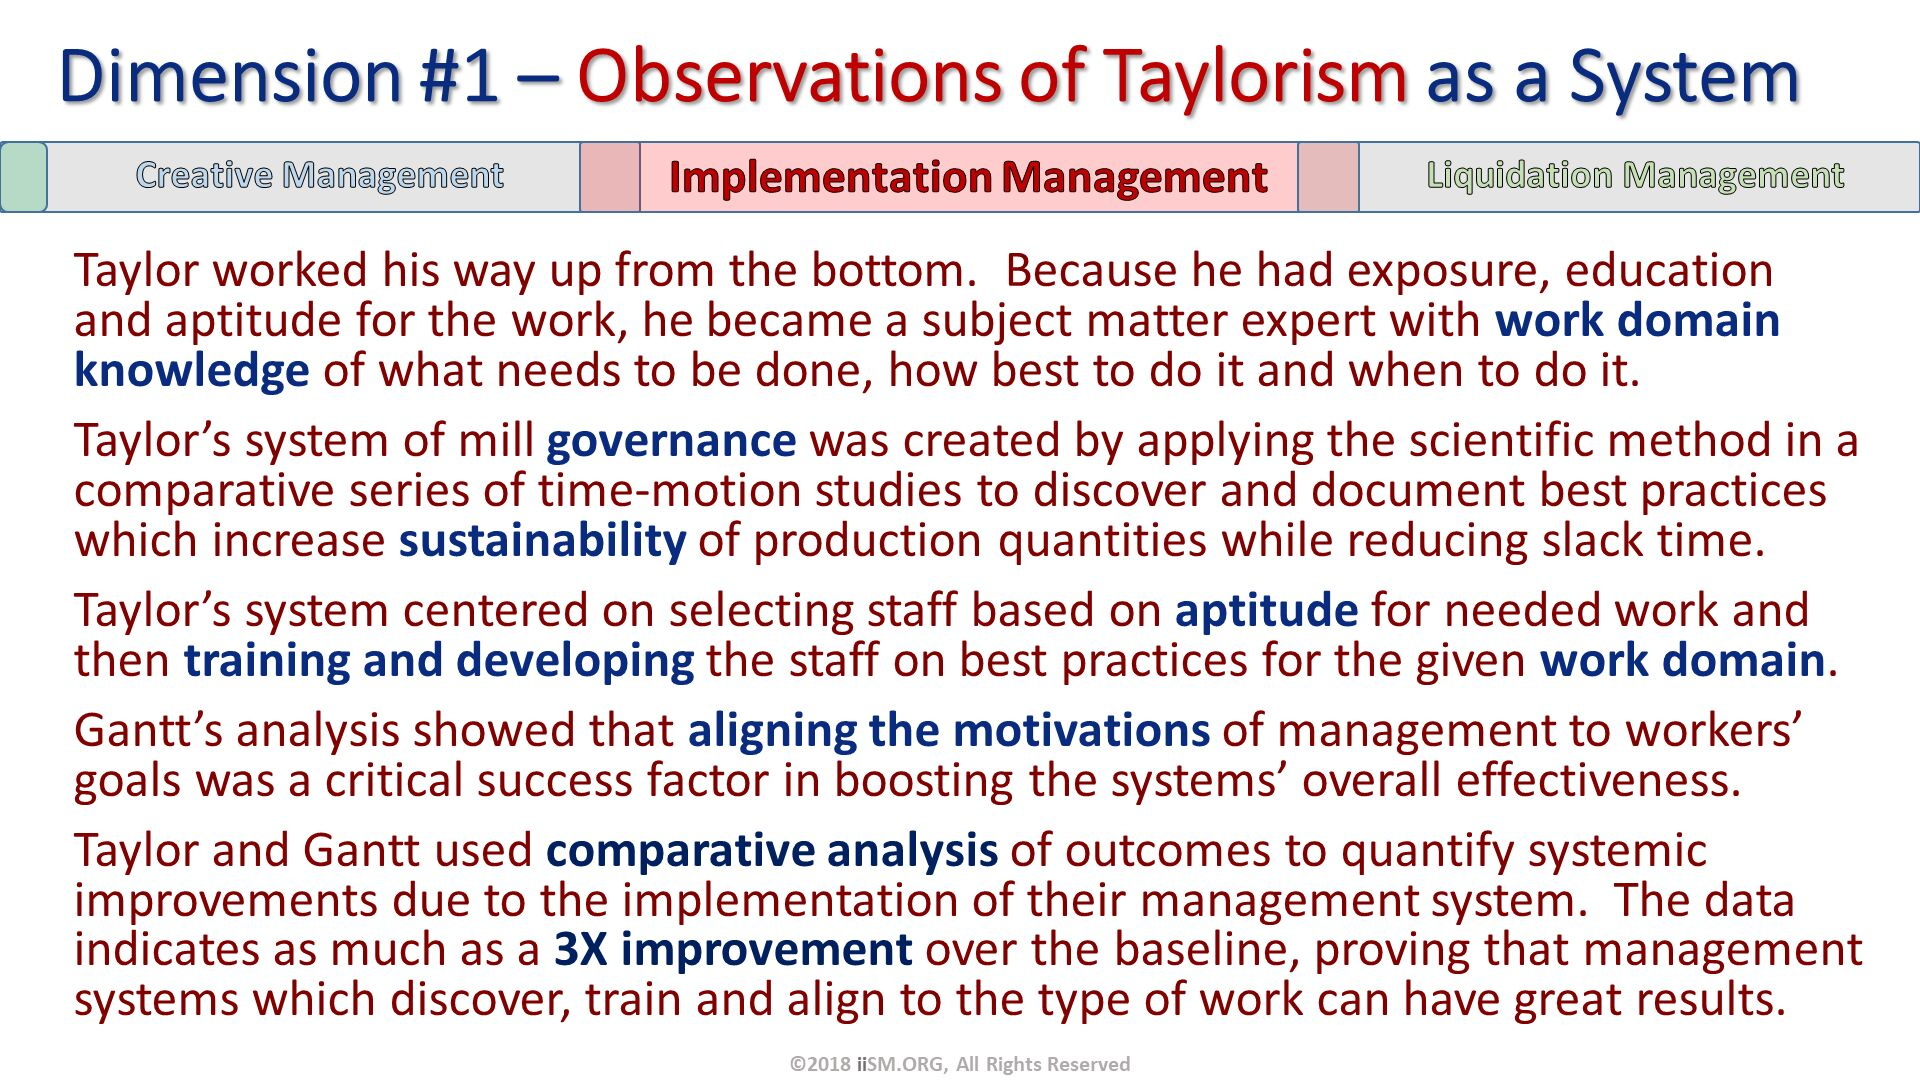 Taylor worked his way up from the bottom.  Because he had exposure, education and aptitude for the work, he became a subject matter expert with work domain knowledge of what needs to be done, how best to do it and when to do it. Taylor's system of mill governance was created by applying the scientific method in a comparative series of time-motion studies to discover and document best practices which increase sustainability of production quantities while reducing slack time.  Taylor's system centered on selecting staff based on aptitude for needed work and then training and developing the staff on best practices for the given work domain. Gantt's analysis showed that aligning the motivations of management to workers' goals was a critical success factor in boosting the systems' overall effectiveness.  Taylor and Gantt used comparative analysis of outcomes to quantify systemic improvements due to the implementation of their management system.  The data indicates as much as a 3X improvement over the baseline, proving that management systems which discover, train and align to the type of work can have great results. . Dimension #1 – Observations of Taylorism as a System. ©2018 iiSM.ORG, All Rights Reserved.